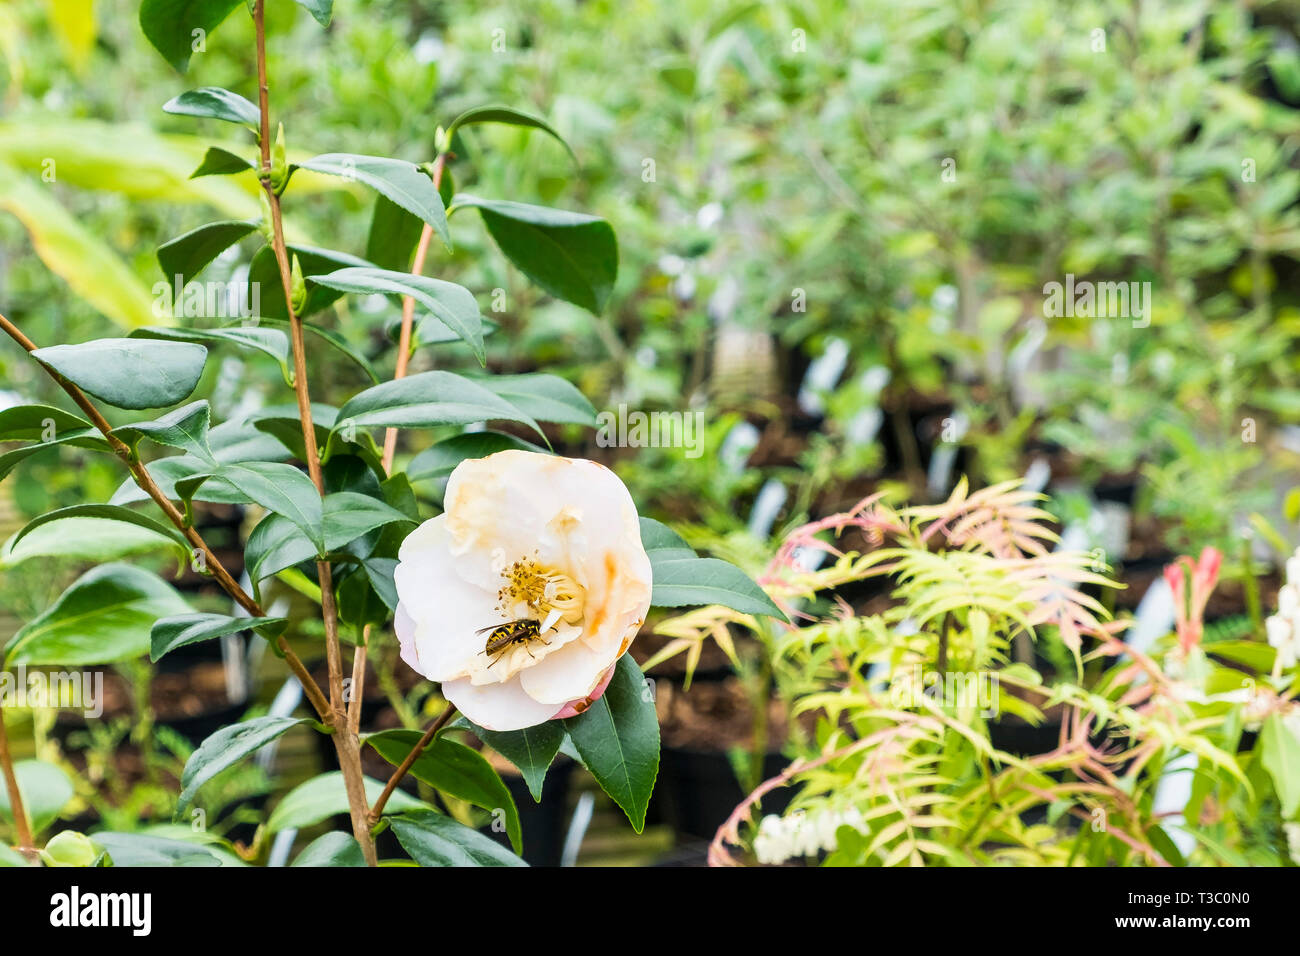 A wasp feeding off the flower on a Camellia japonica 'Doctor Tinsley'. - Stock Image